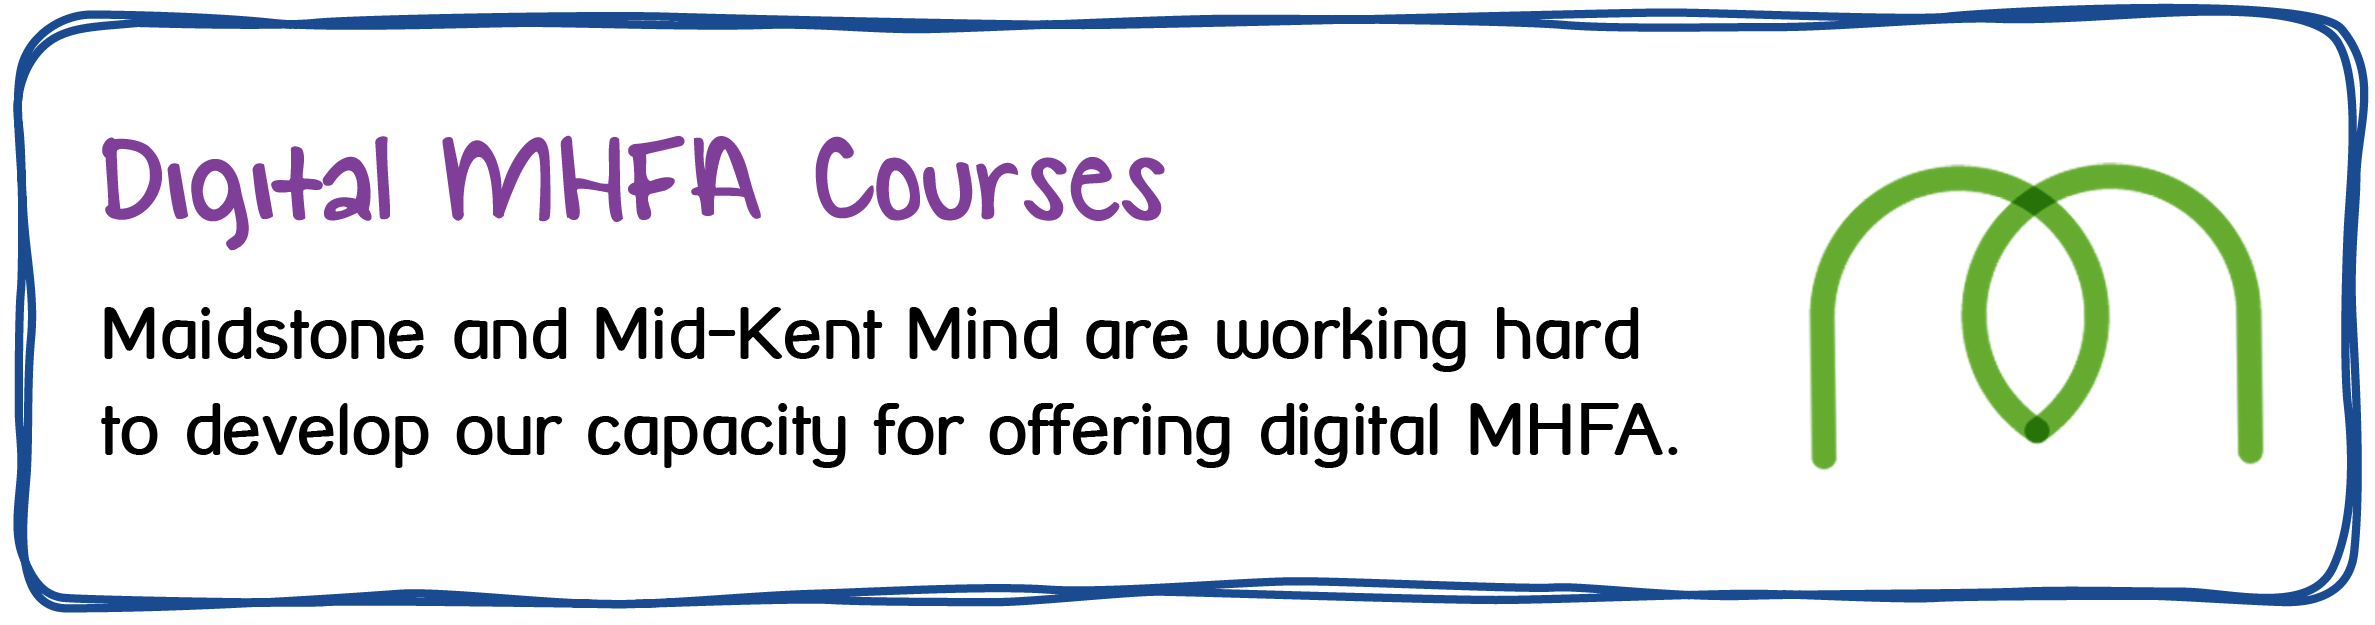 Digital MHFA Courses. Maidstone and Mid-Kent Mind are working hard to develop our capacity for offering digital MHFA.